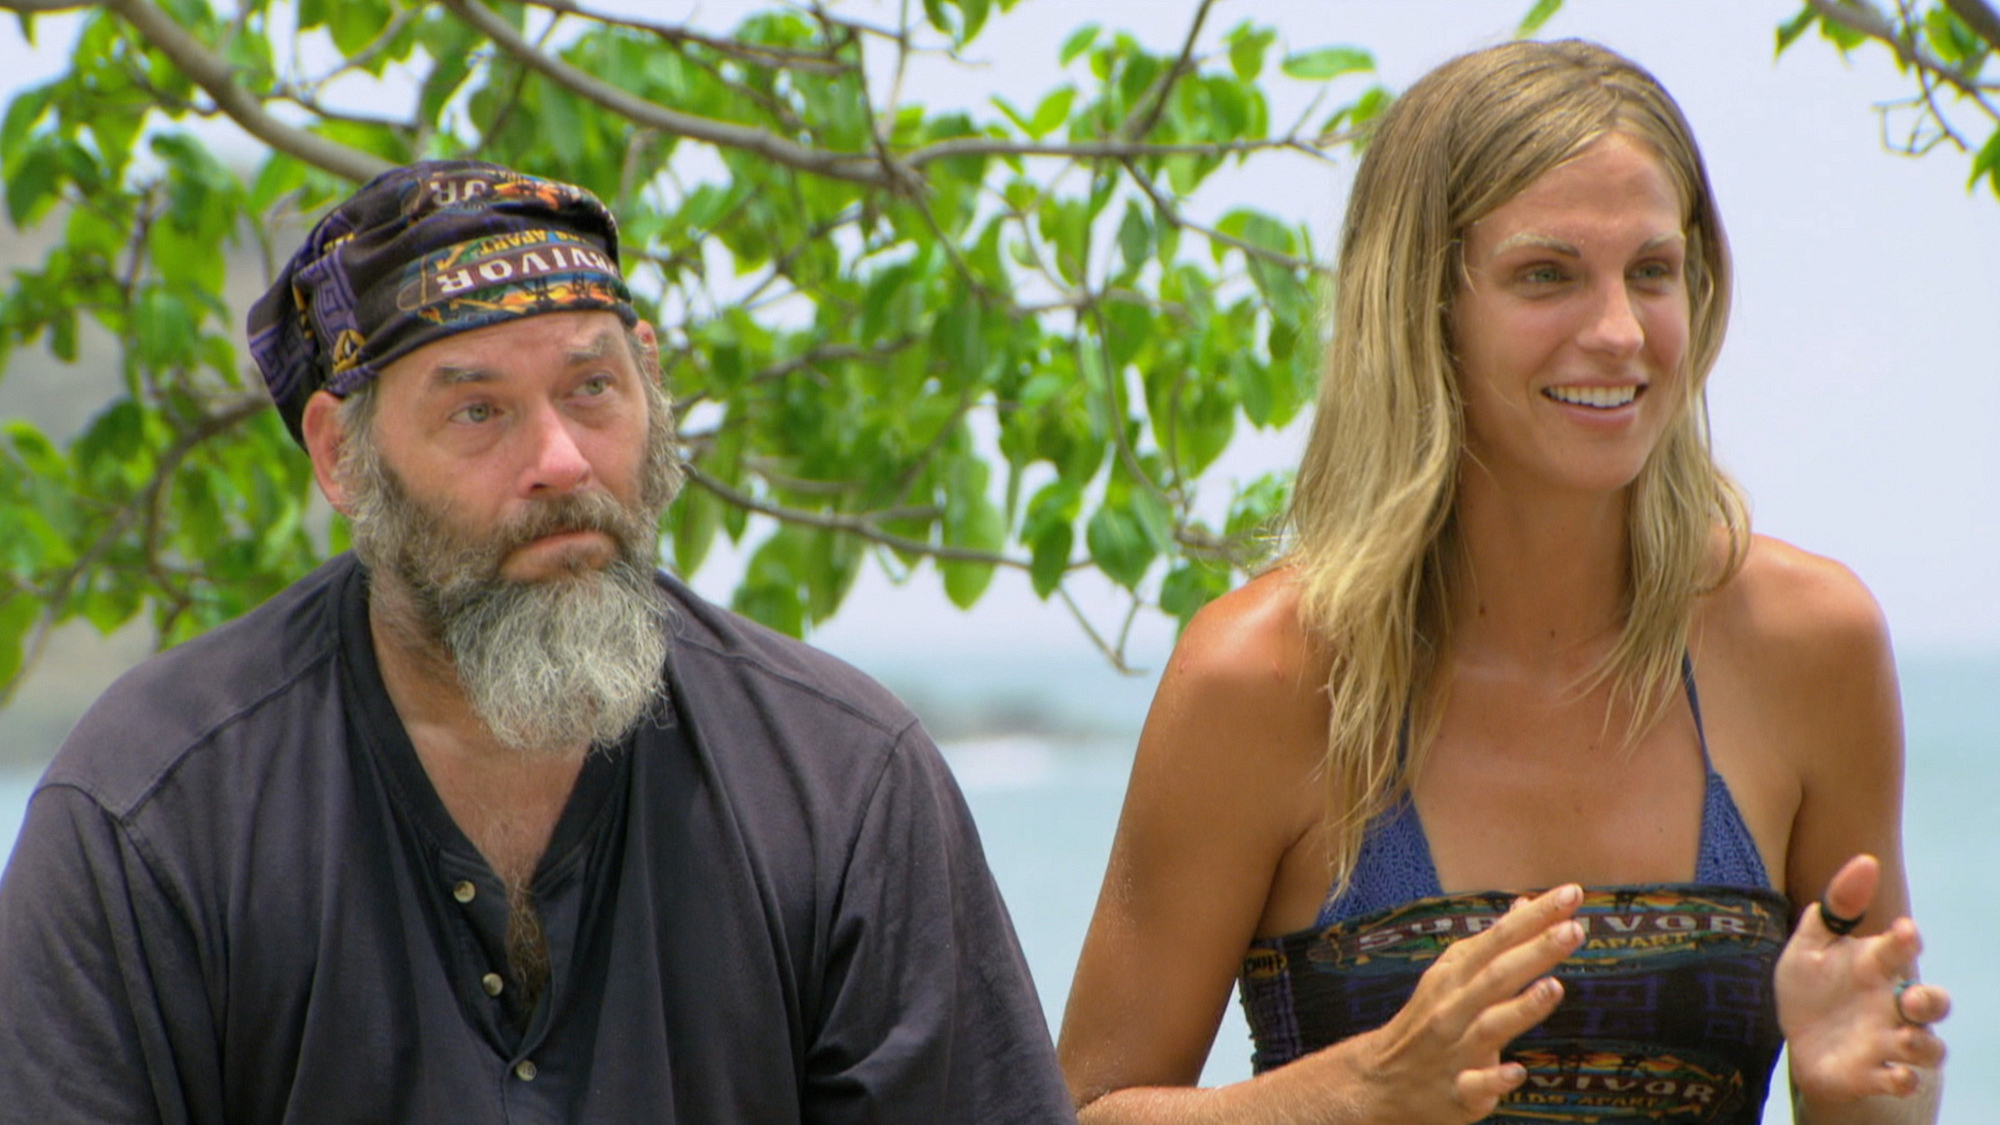 The castaways bring various expressions to the game